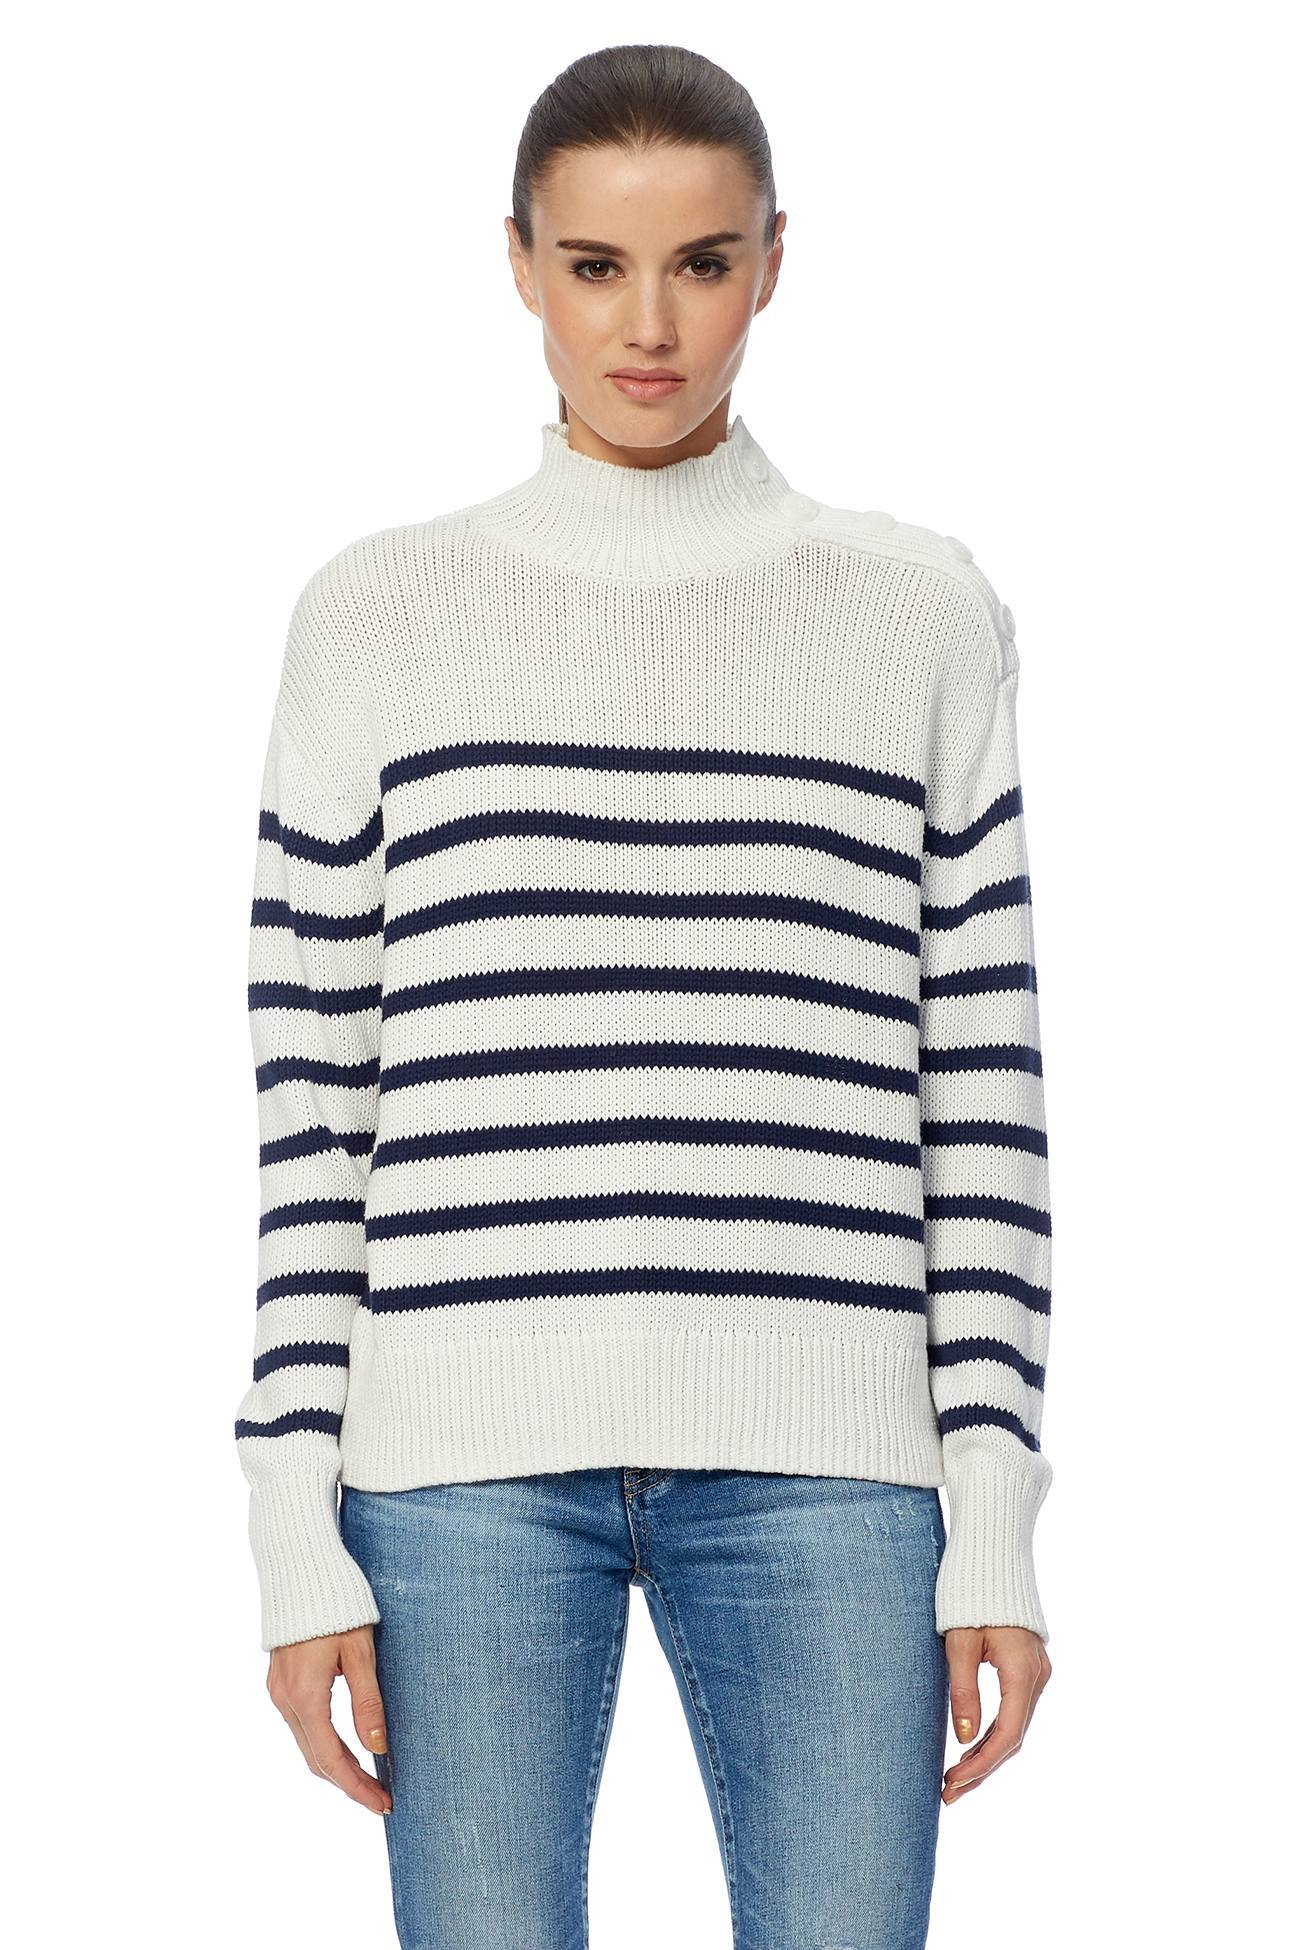 Macie Turtleneck Sweater - White/Navy